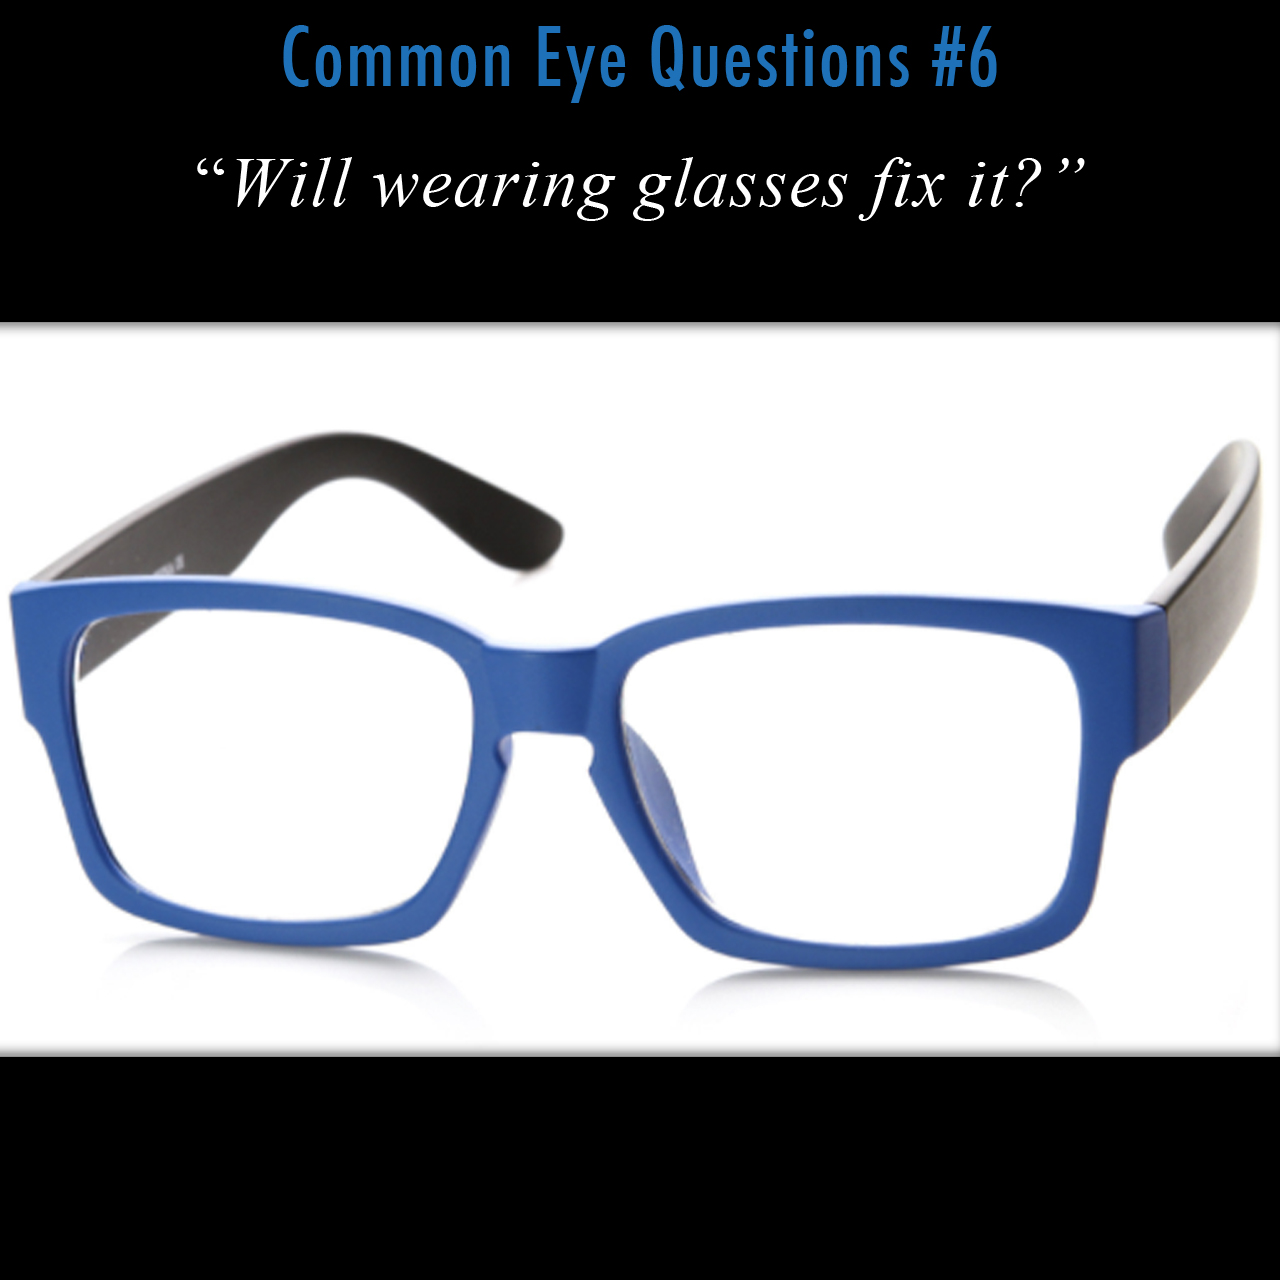 Wearing glasses helps fix some eye problems, but certainly not all of them.